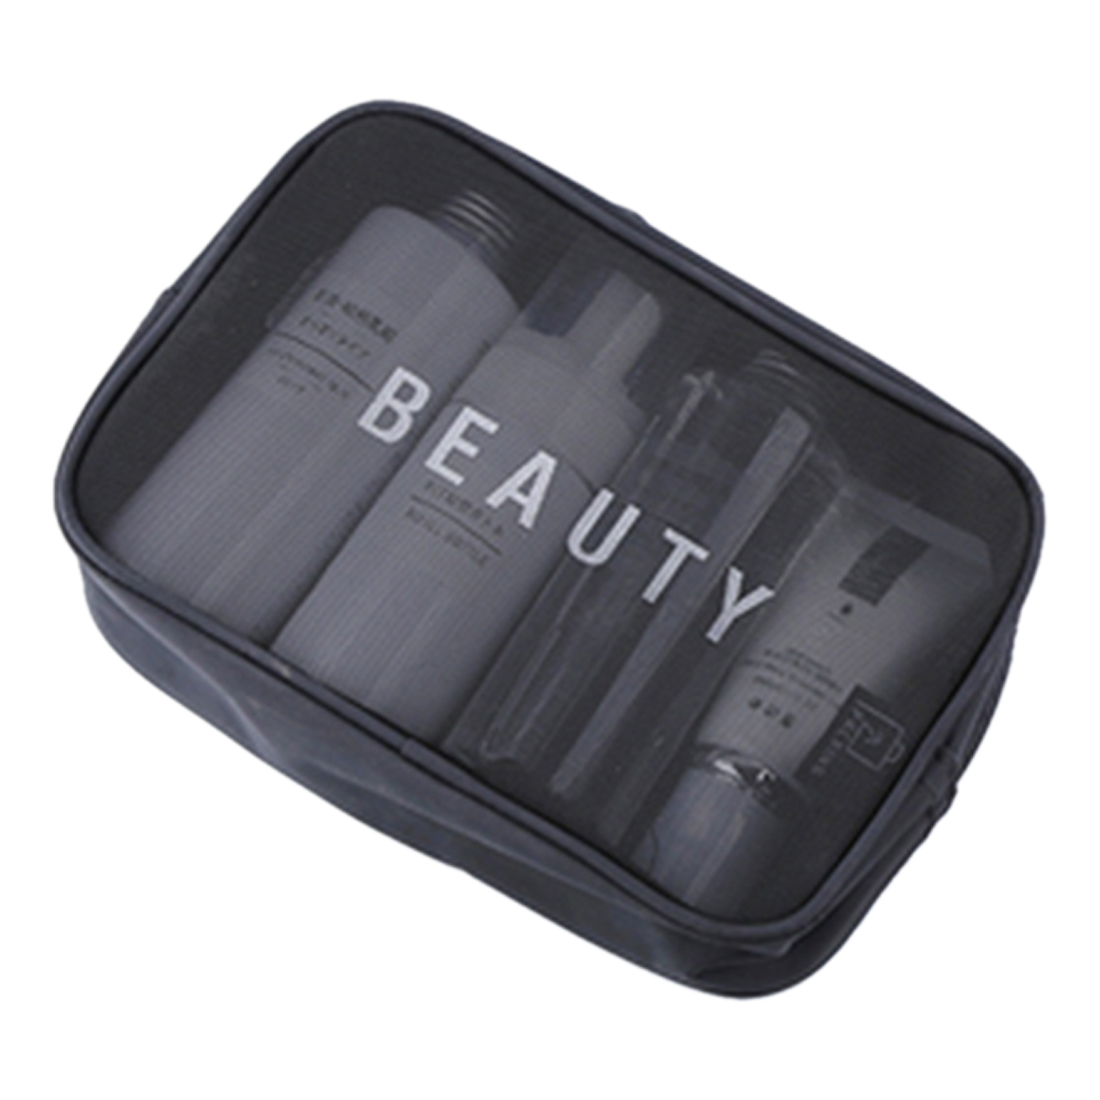 Aresland Transparent Waterproof Cosmetic Bag Clear Travel Women Makeup Storage Pounch Bags LadIes Make Up Toiletry Bag Black ...